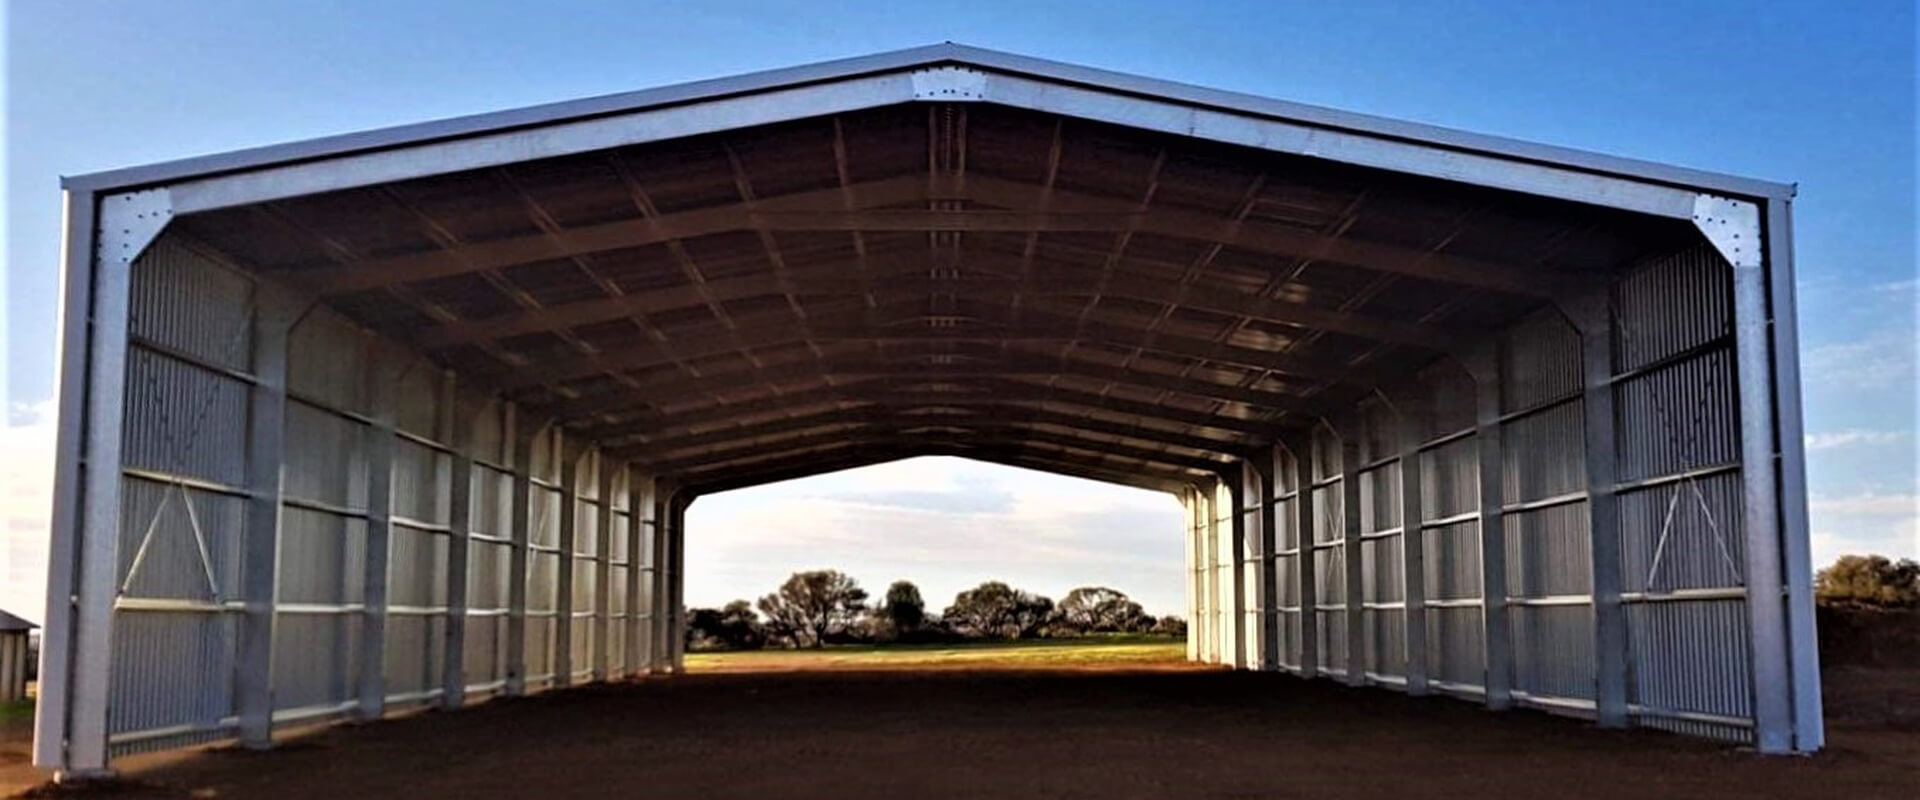 45 x 18 x 6m Drive Through Machinery Shed